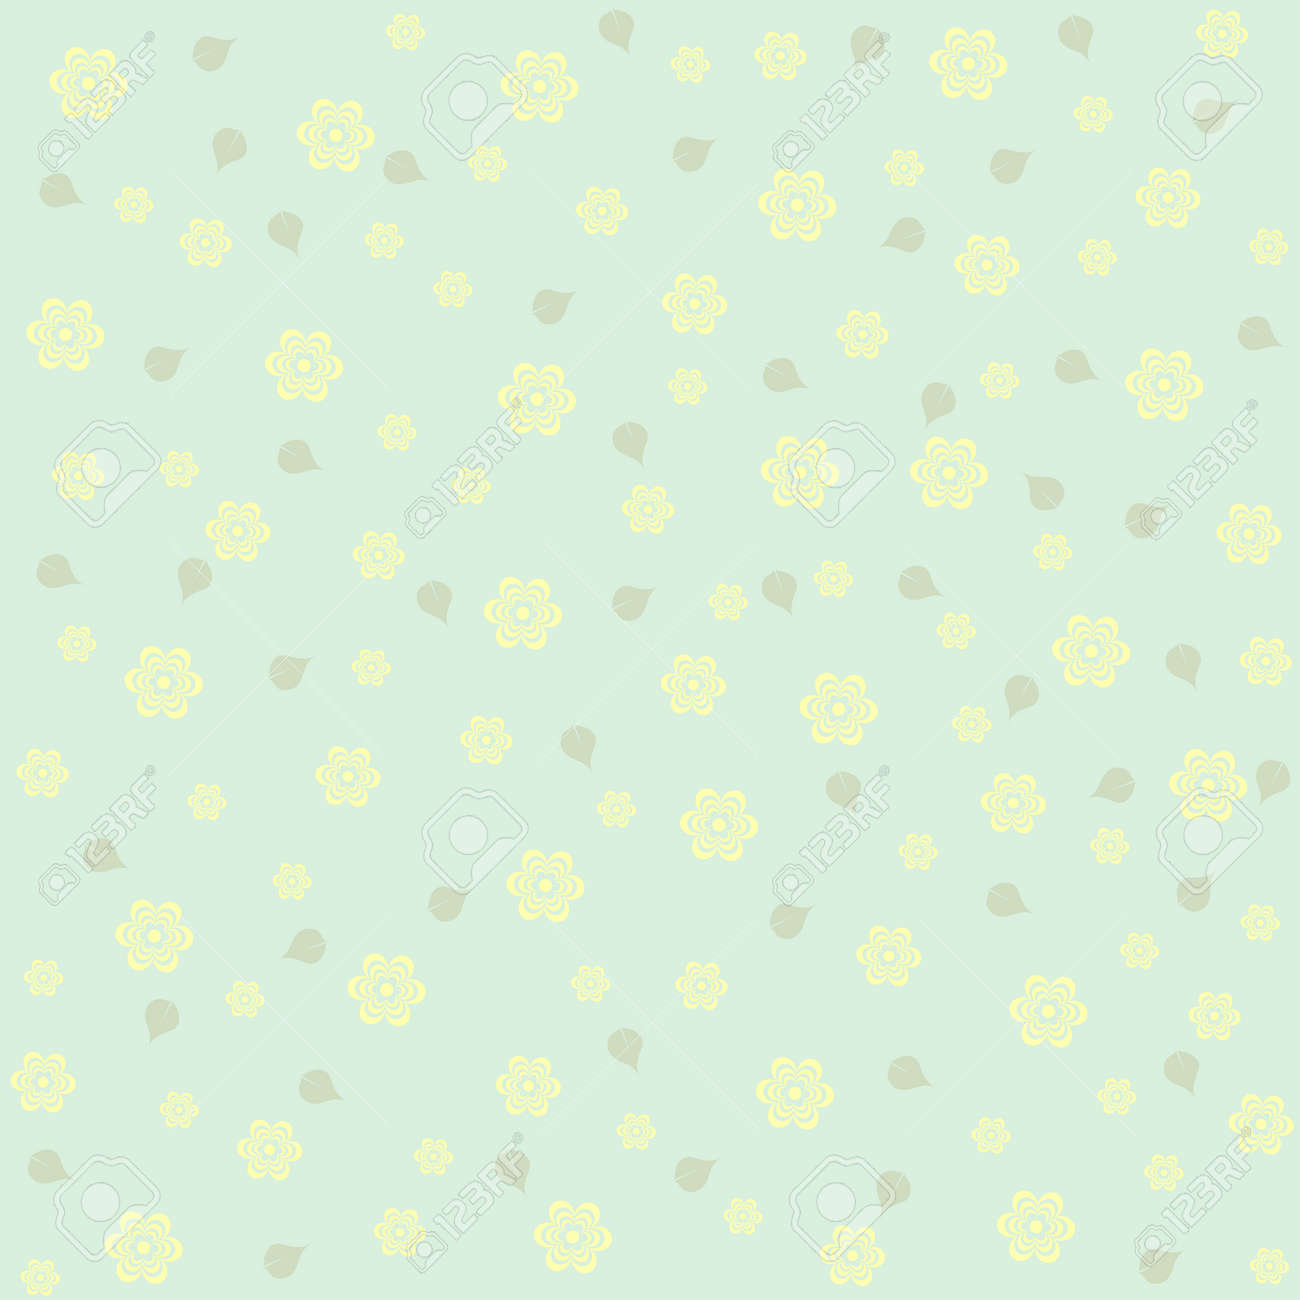 Seamless Pattern With Flowers It Can Be Used For Wrapping Paper